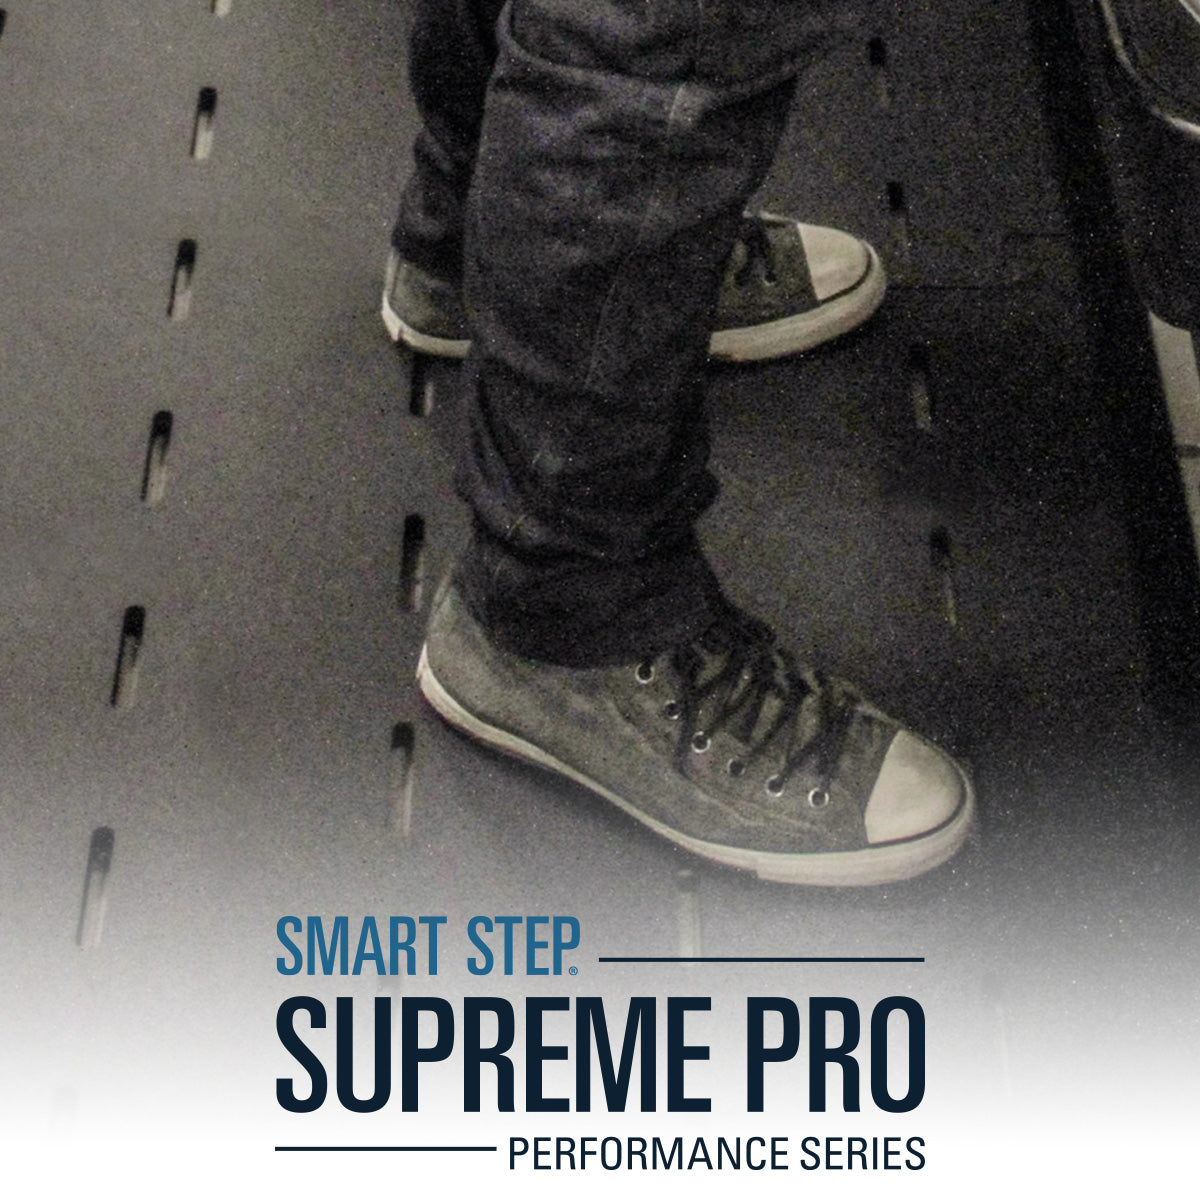 Smart Step Supreme Pro